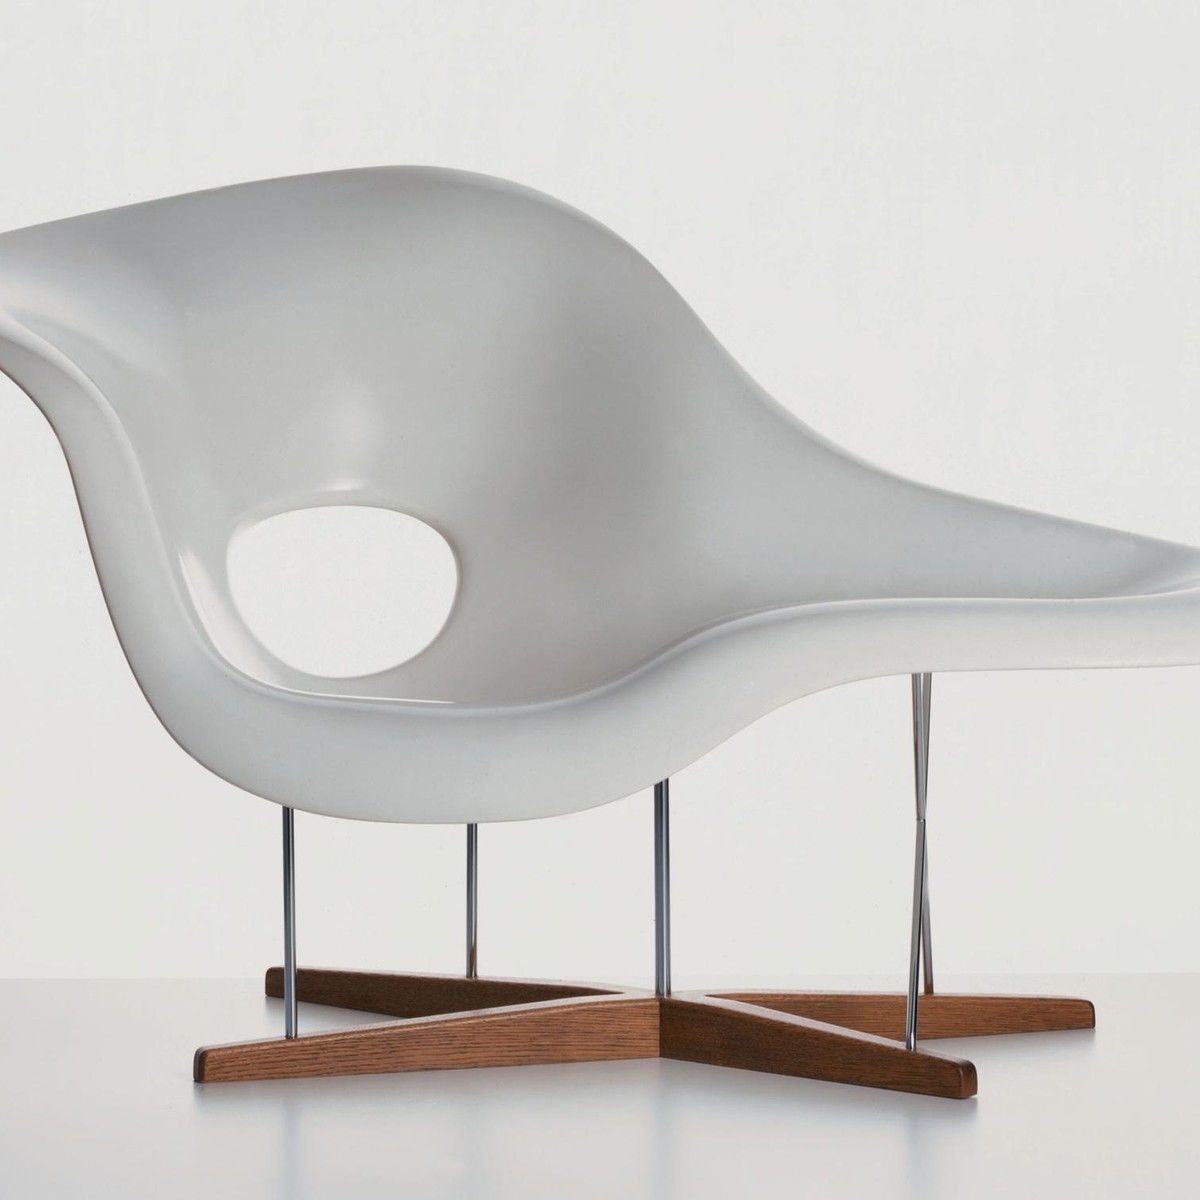 La chaise eames chaise longue vitra for Chaise longue chilienne